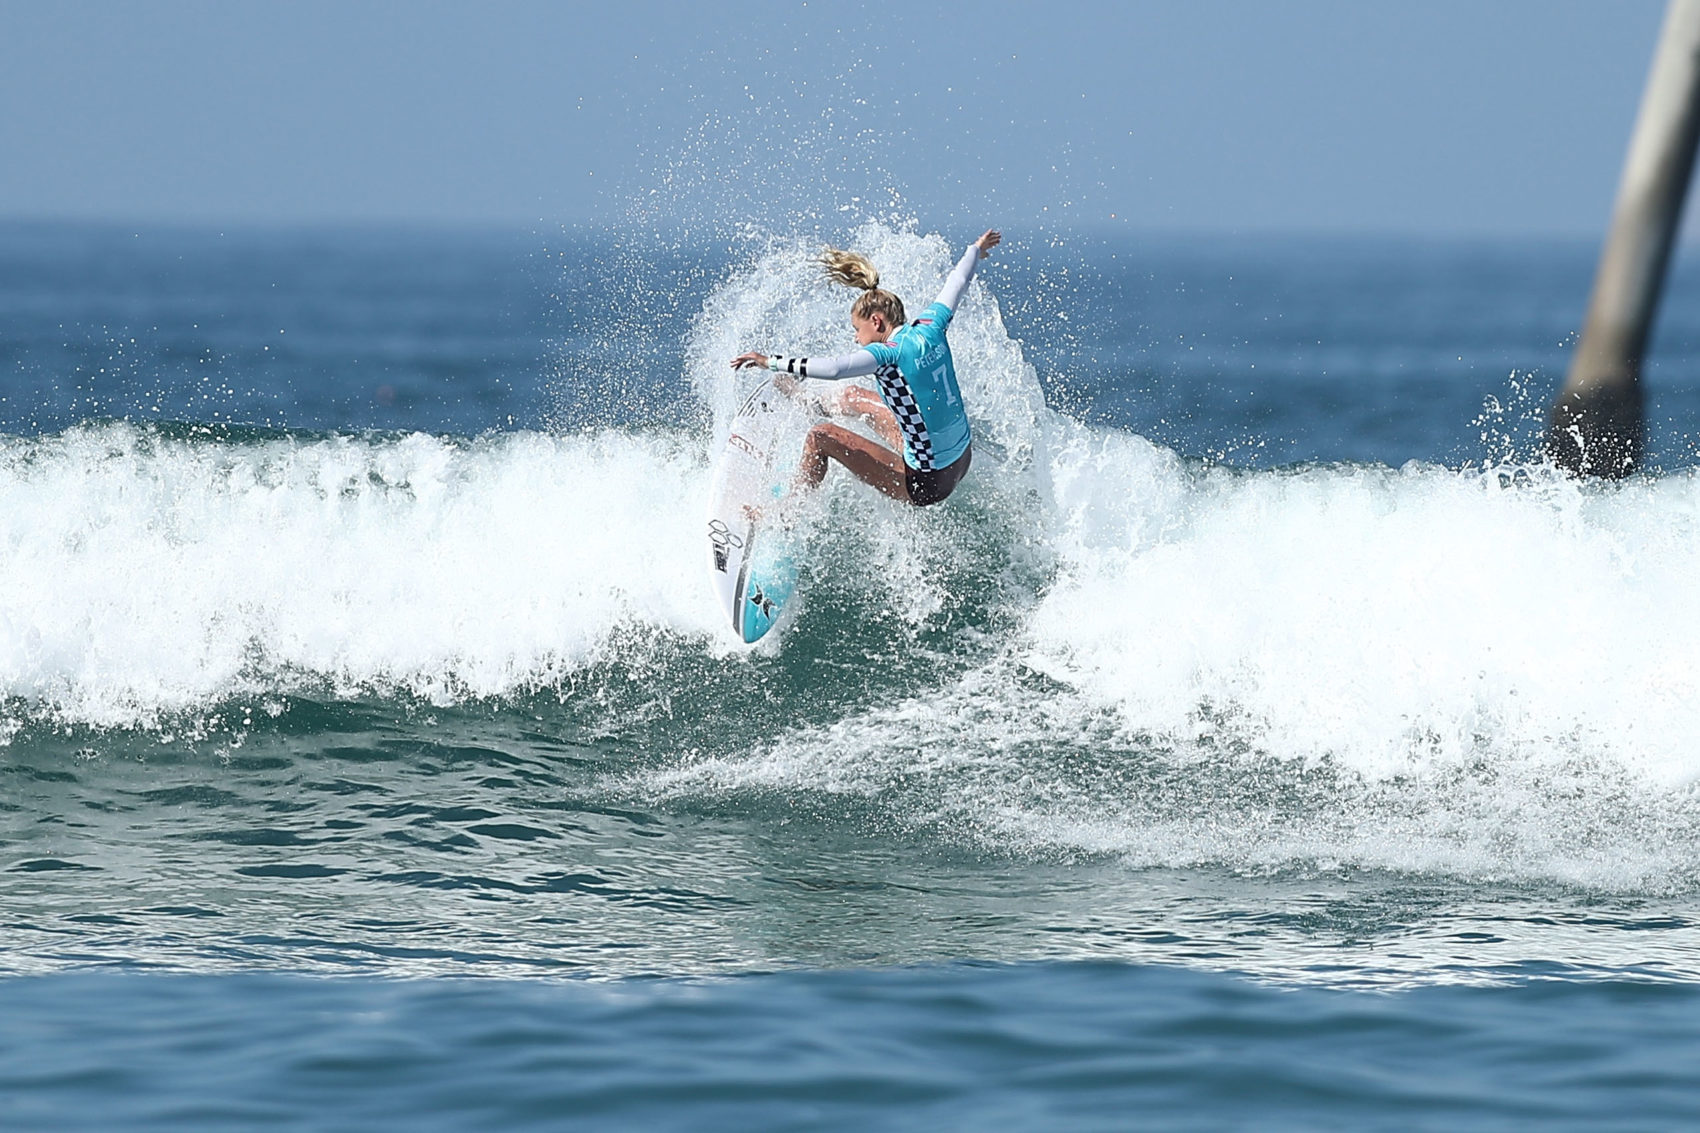 A surfer competes in the women's quarterfinals at the Vans U.S. Open of Surfing on Aug. 5, 2018 in Huntington Beach, California. Women competing at the highest levels of surfing will now win the same prize money as their male counterparts after a rules change took effect earlier this month. (Joe Scarnici/Getty Images)